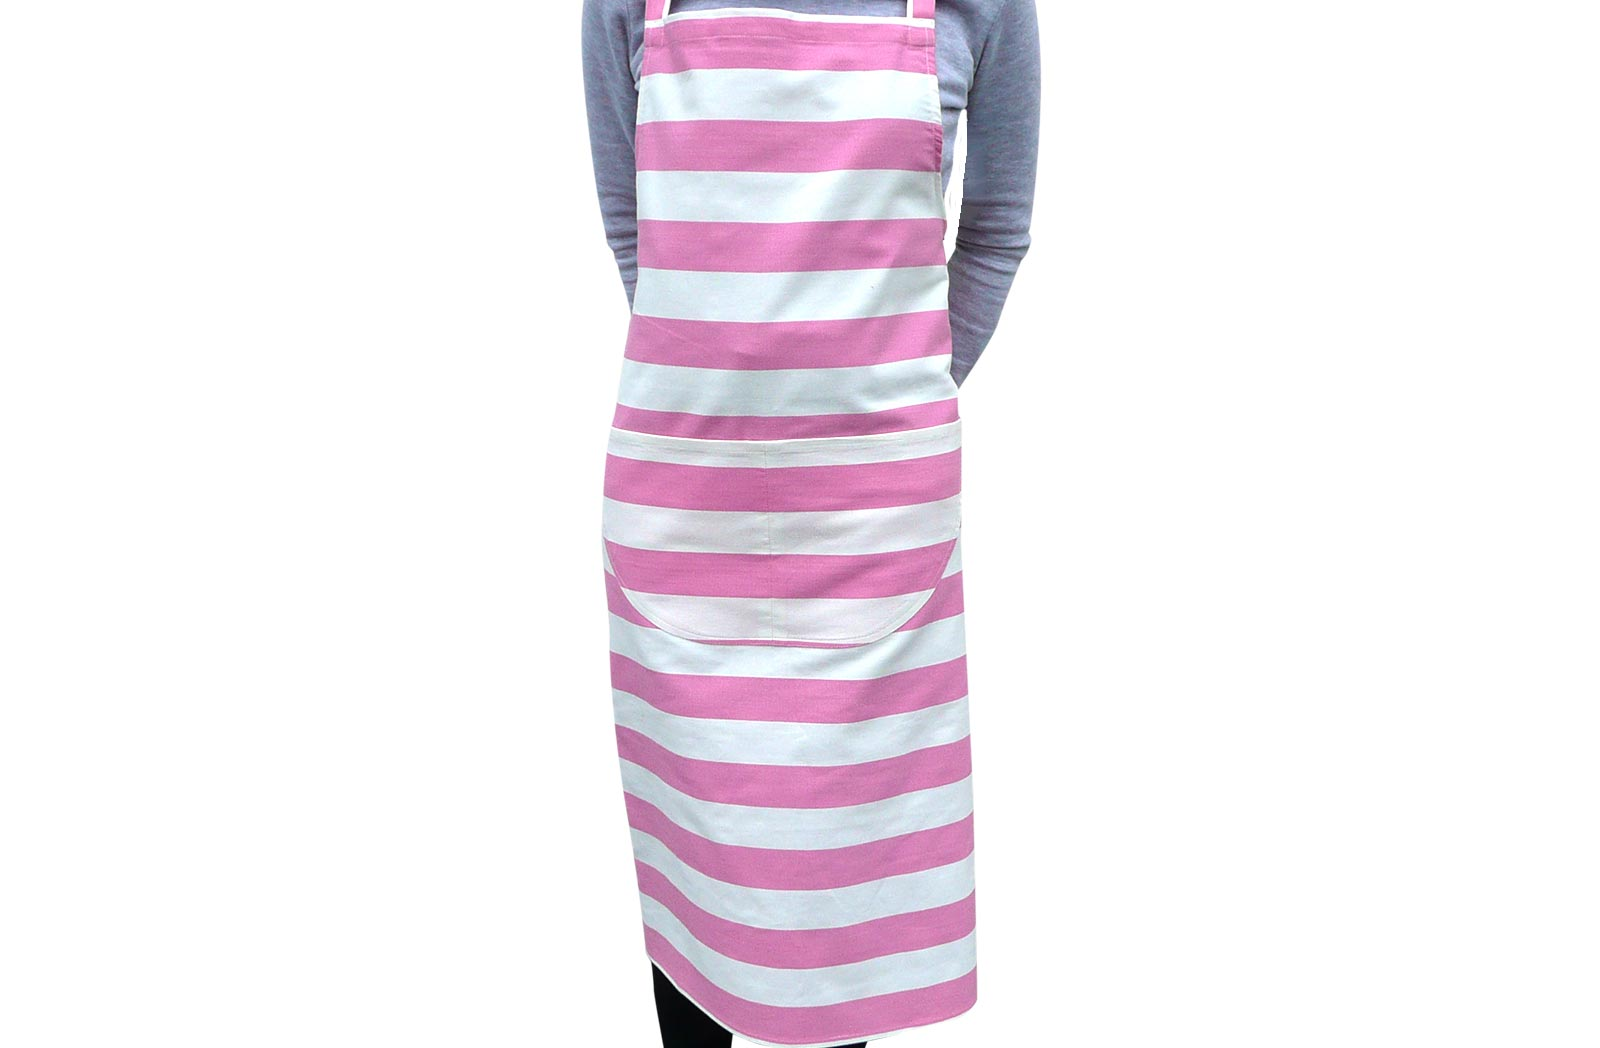 Pink and White Striped Apron